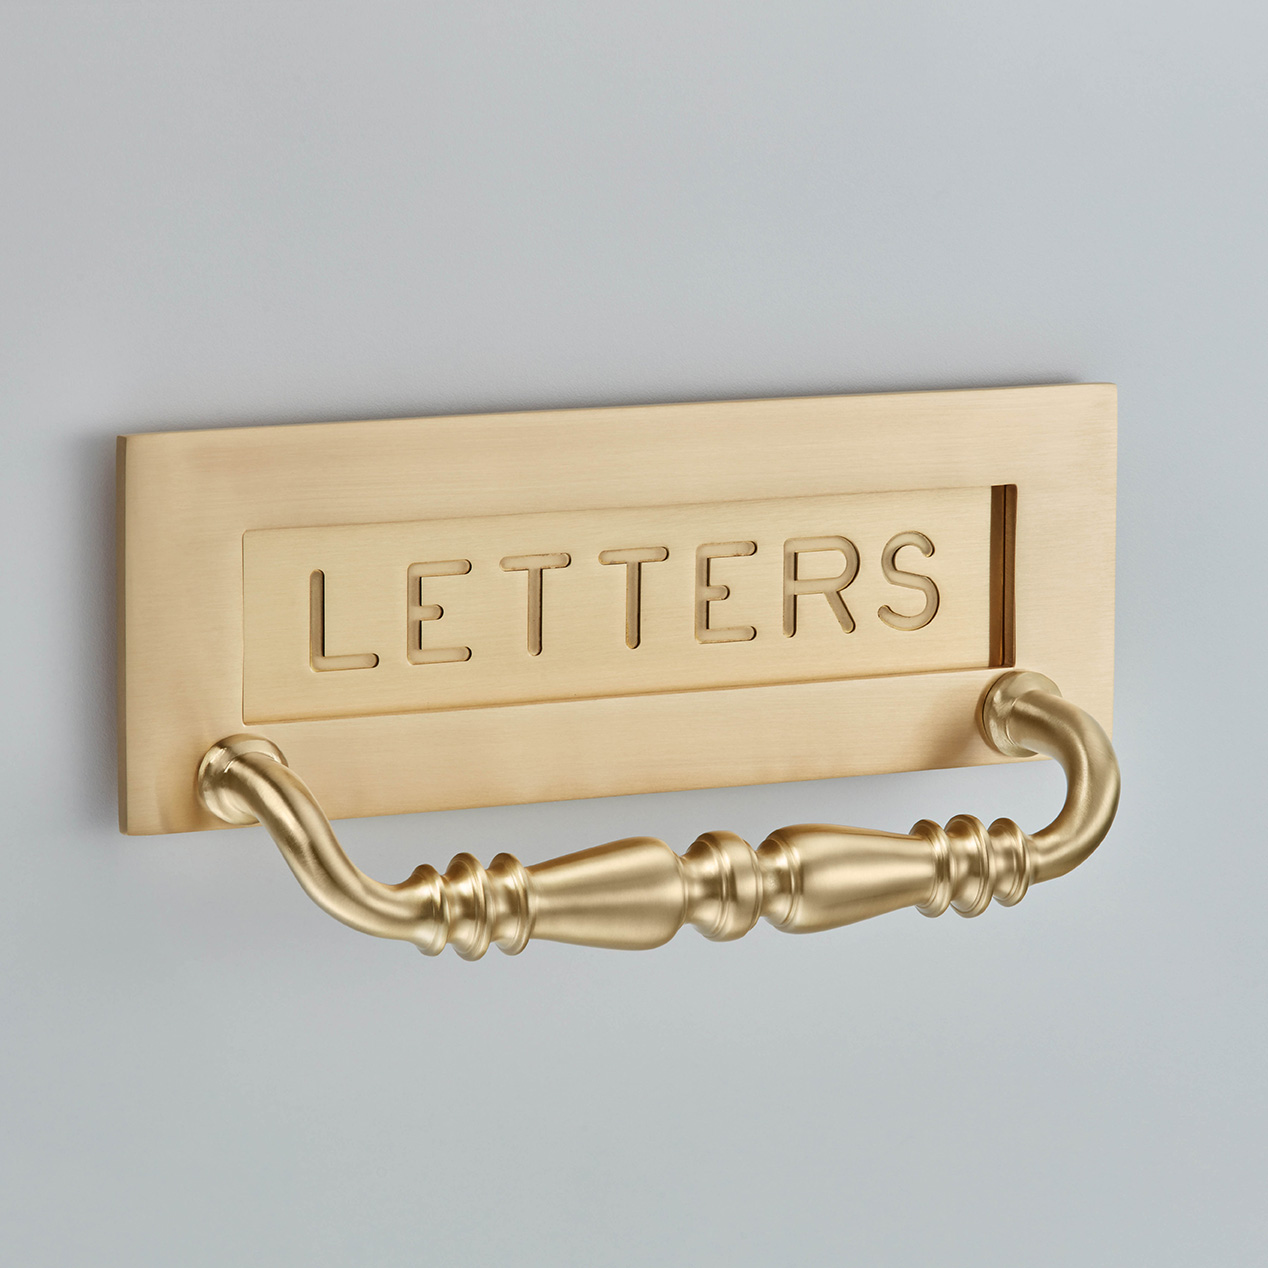 Engraved Letter Plate with handle